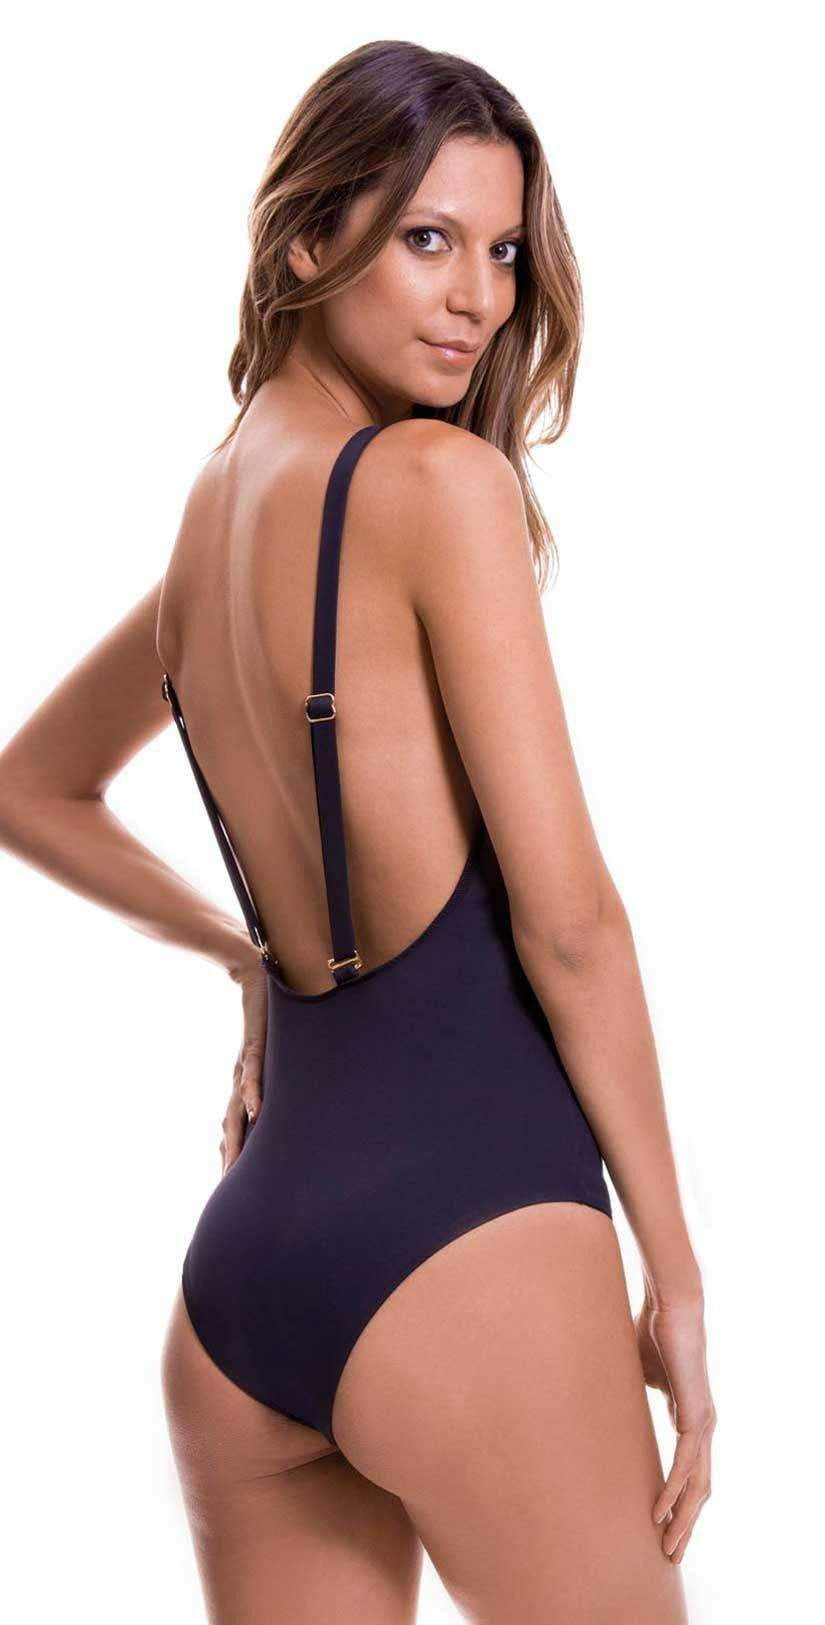 Milonga Shell Cutout One Piece in Black 070: